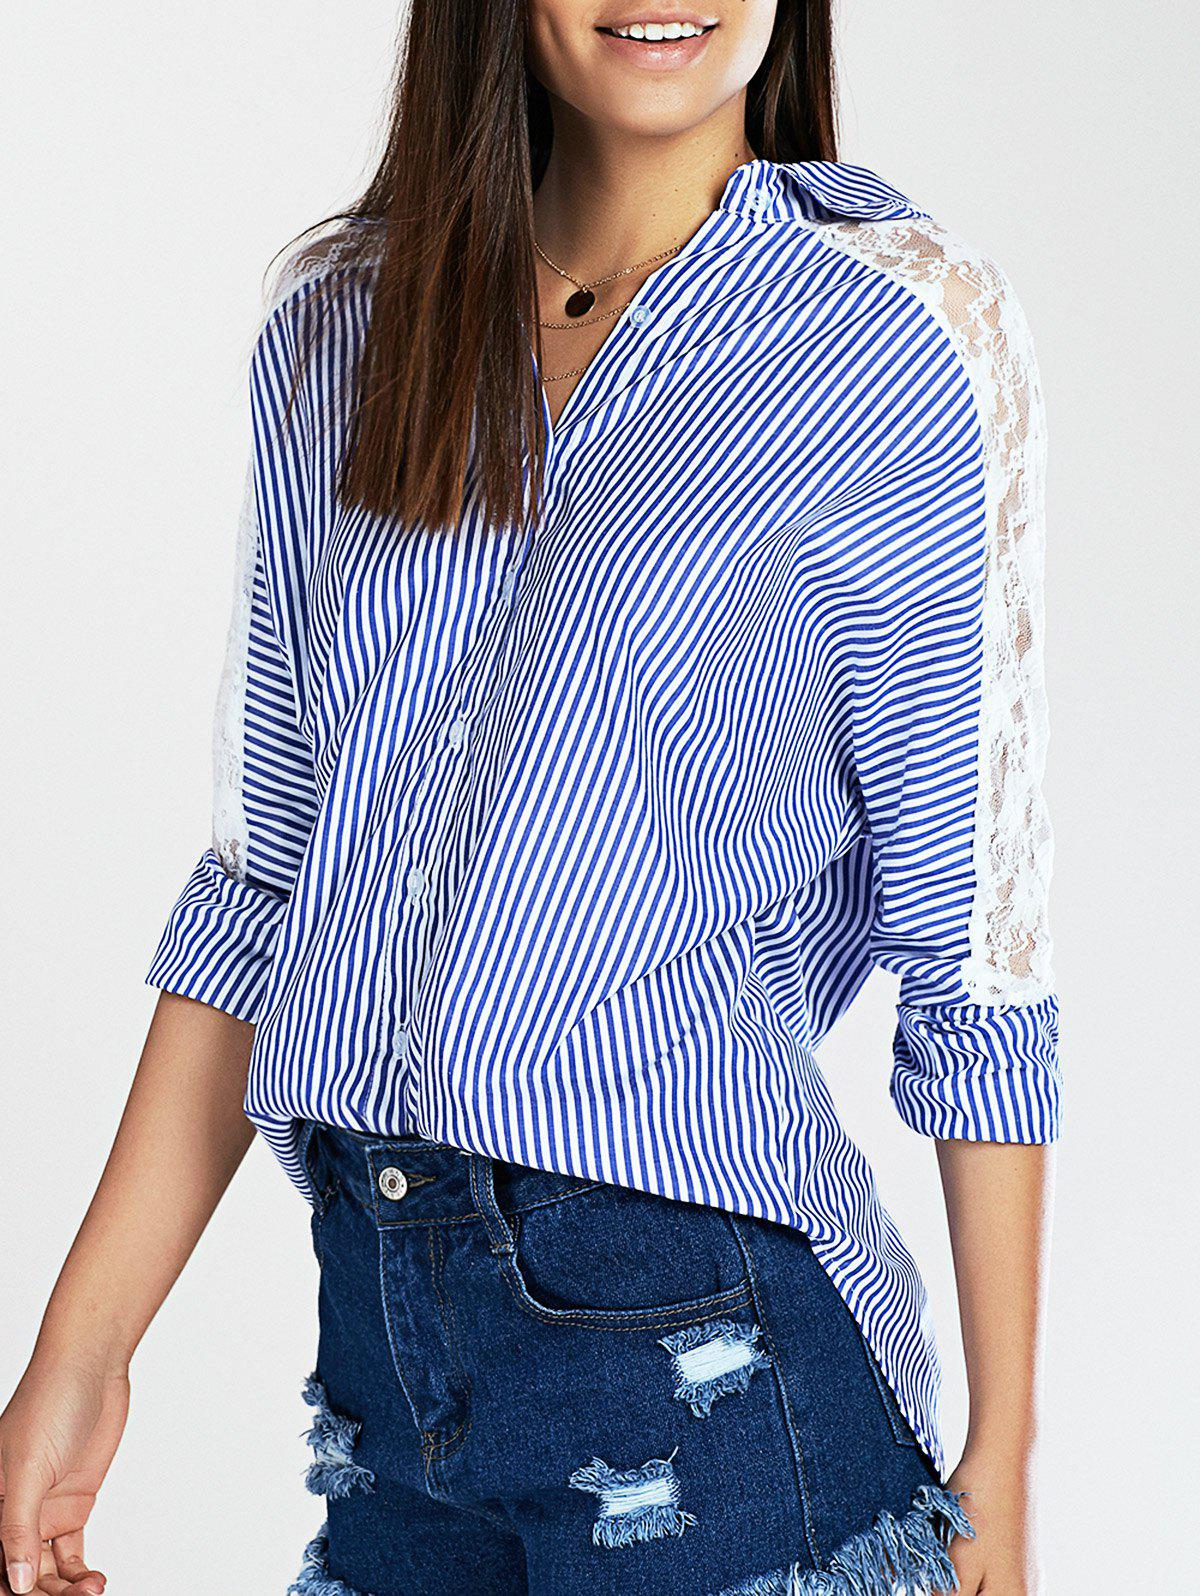 Lace Spliced Batwing Sleeve High-Low Striped Shirt - STRIPE 5XL